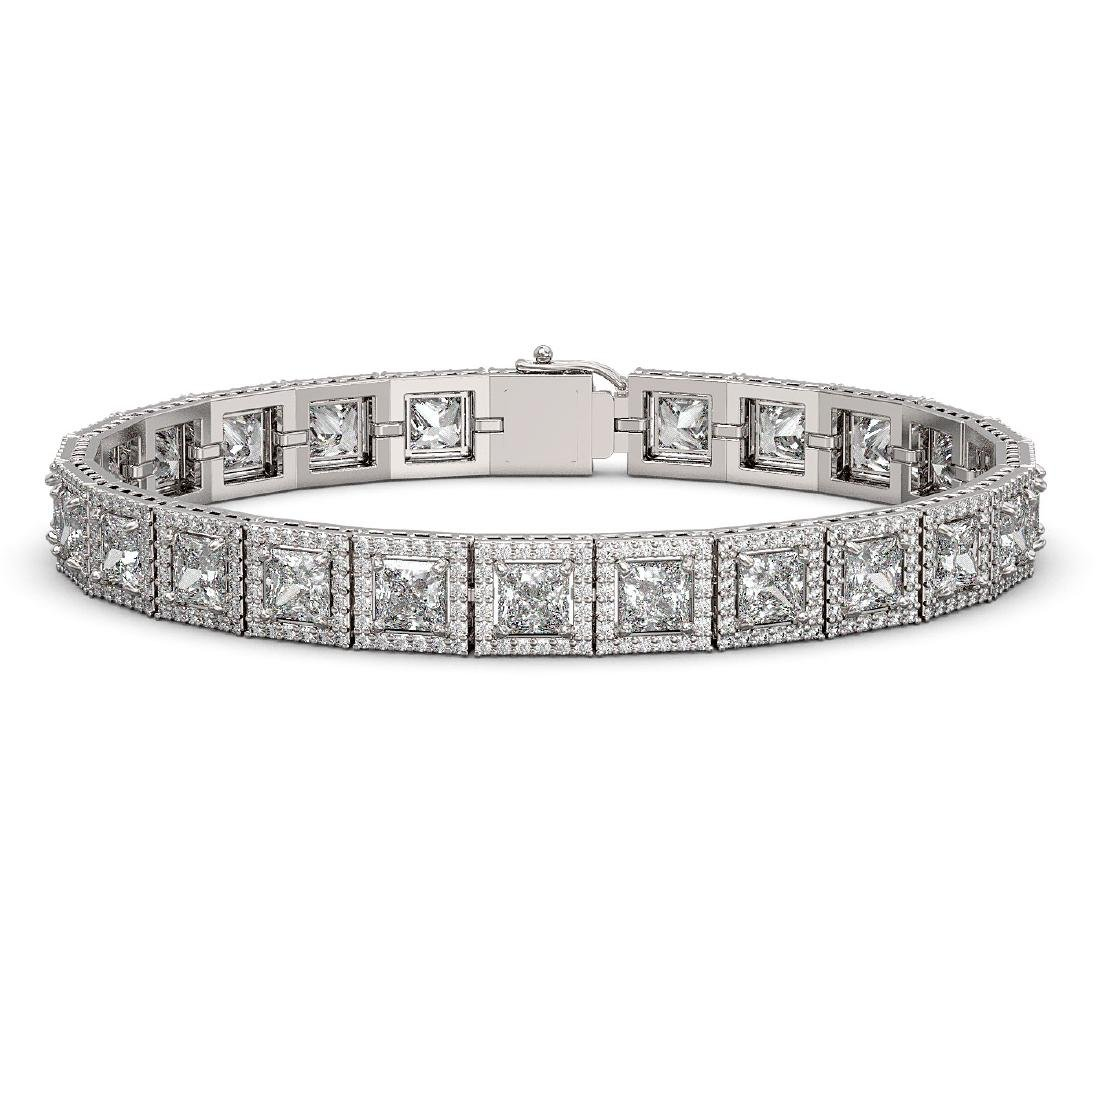 15.87 CTW Princess Diamond Designer Bracelet 18K White